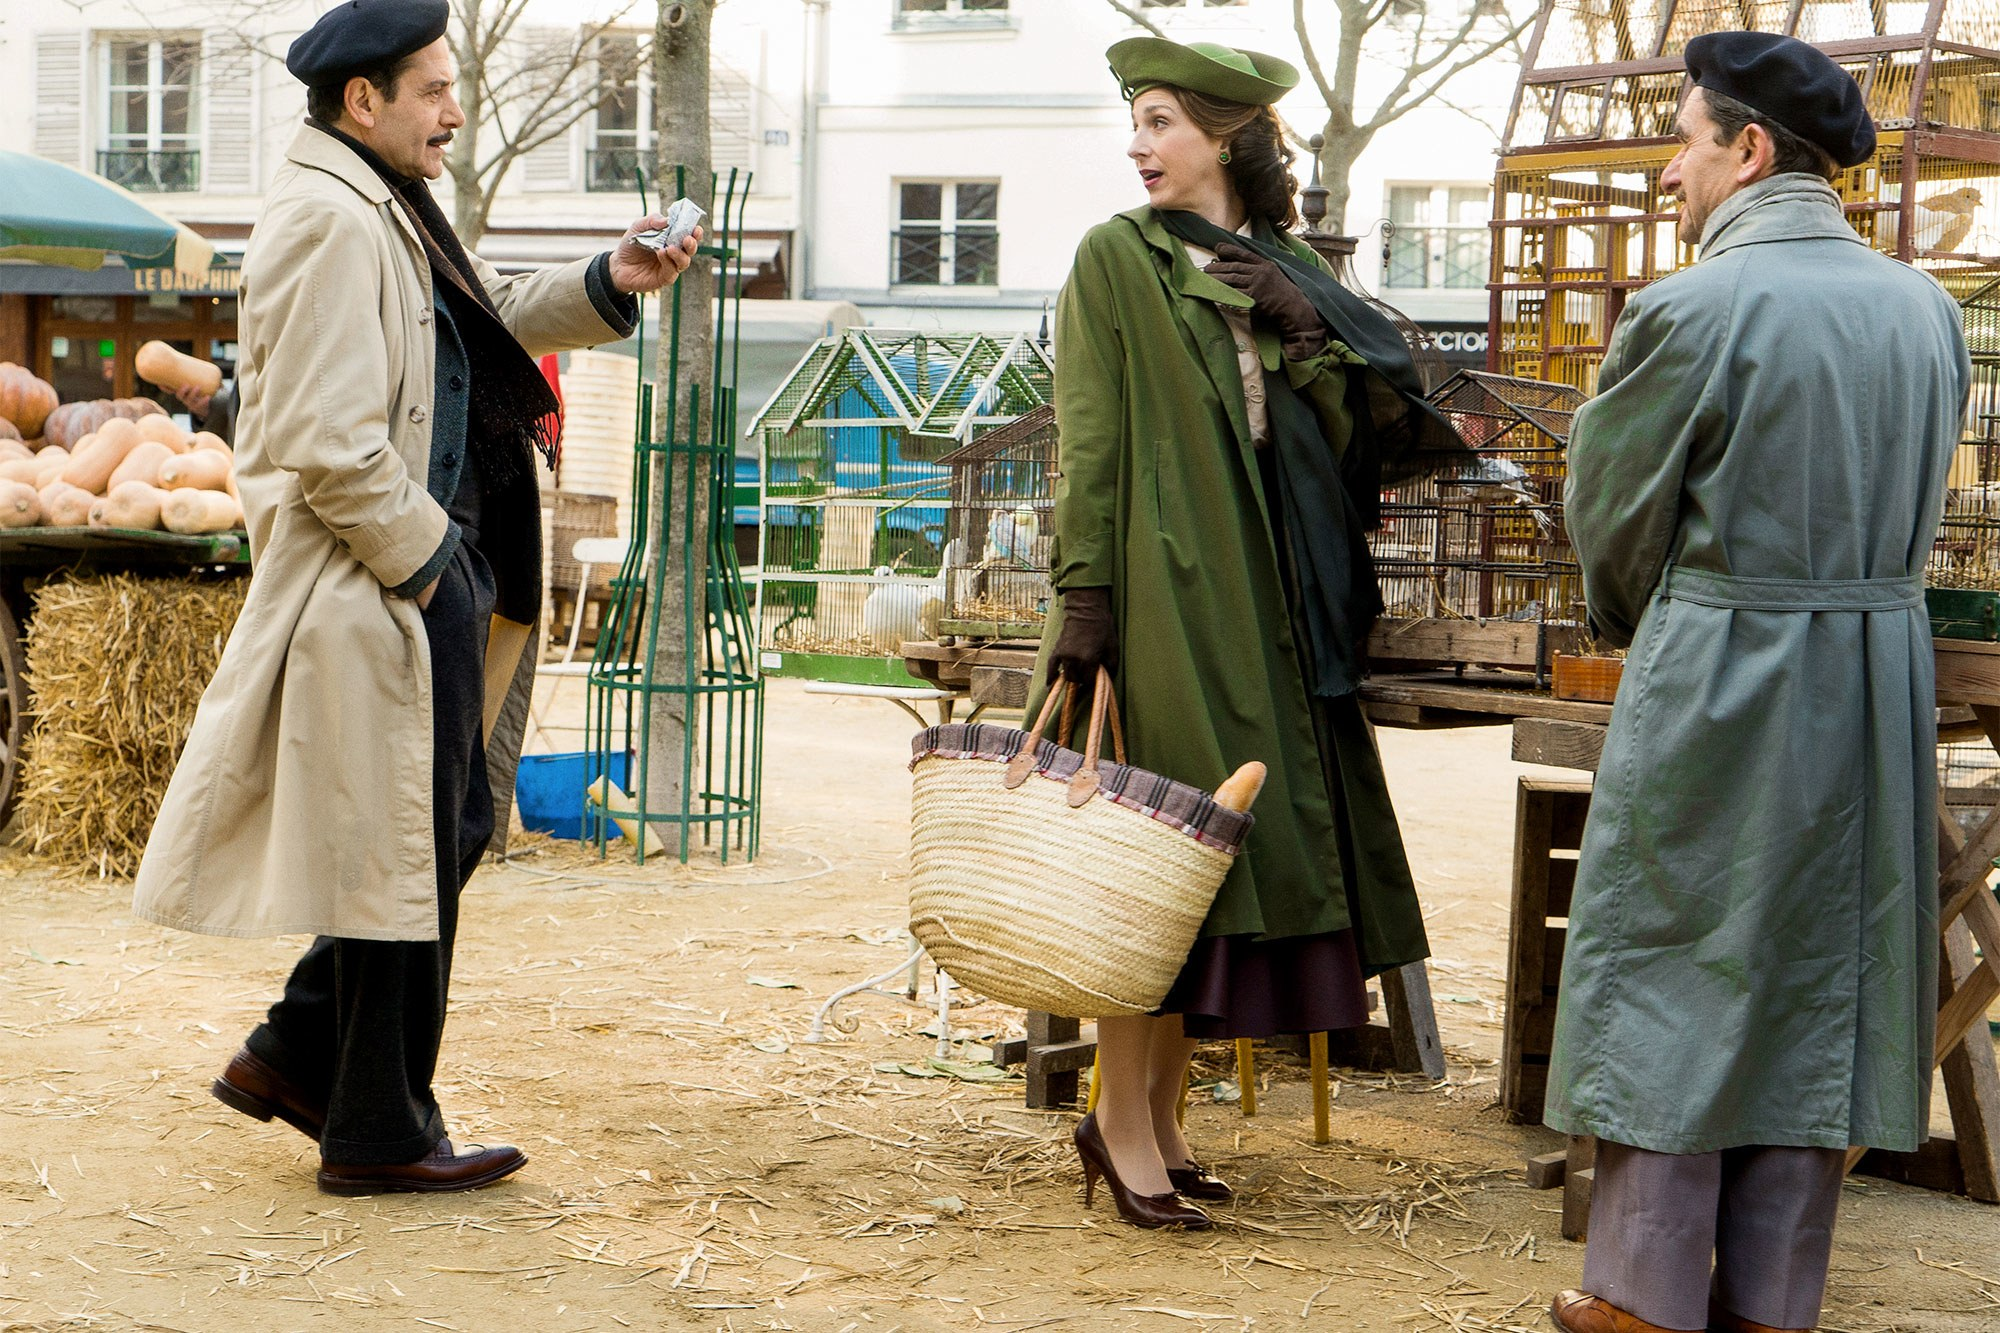 """Tony Shalhoub as Abe Weissman and Marin Hinkle as Rose Weissman in """"The Marvelous Mrs. Maisel"""" (Promotional still)"""